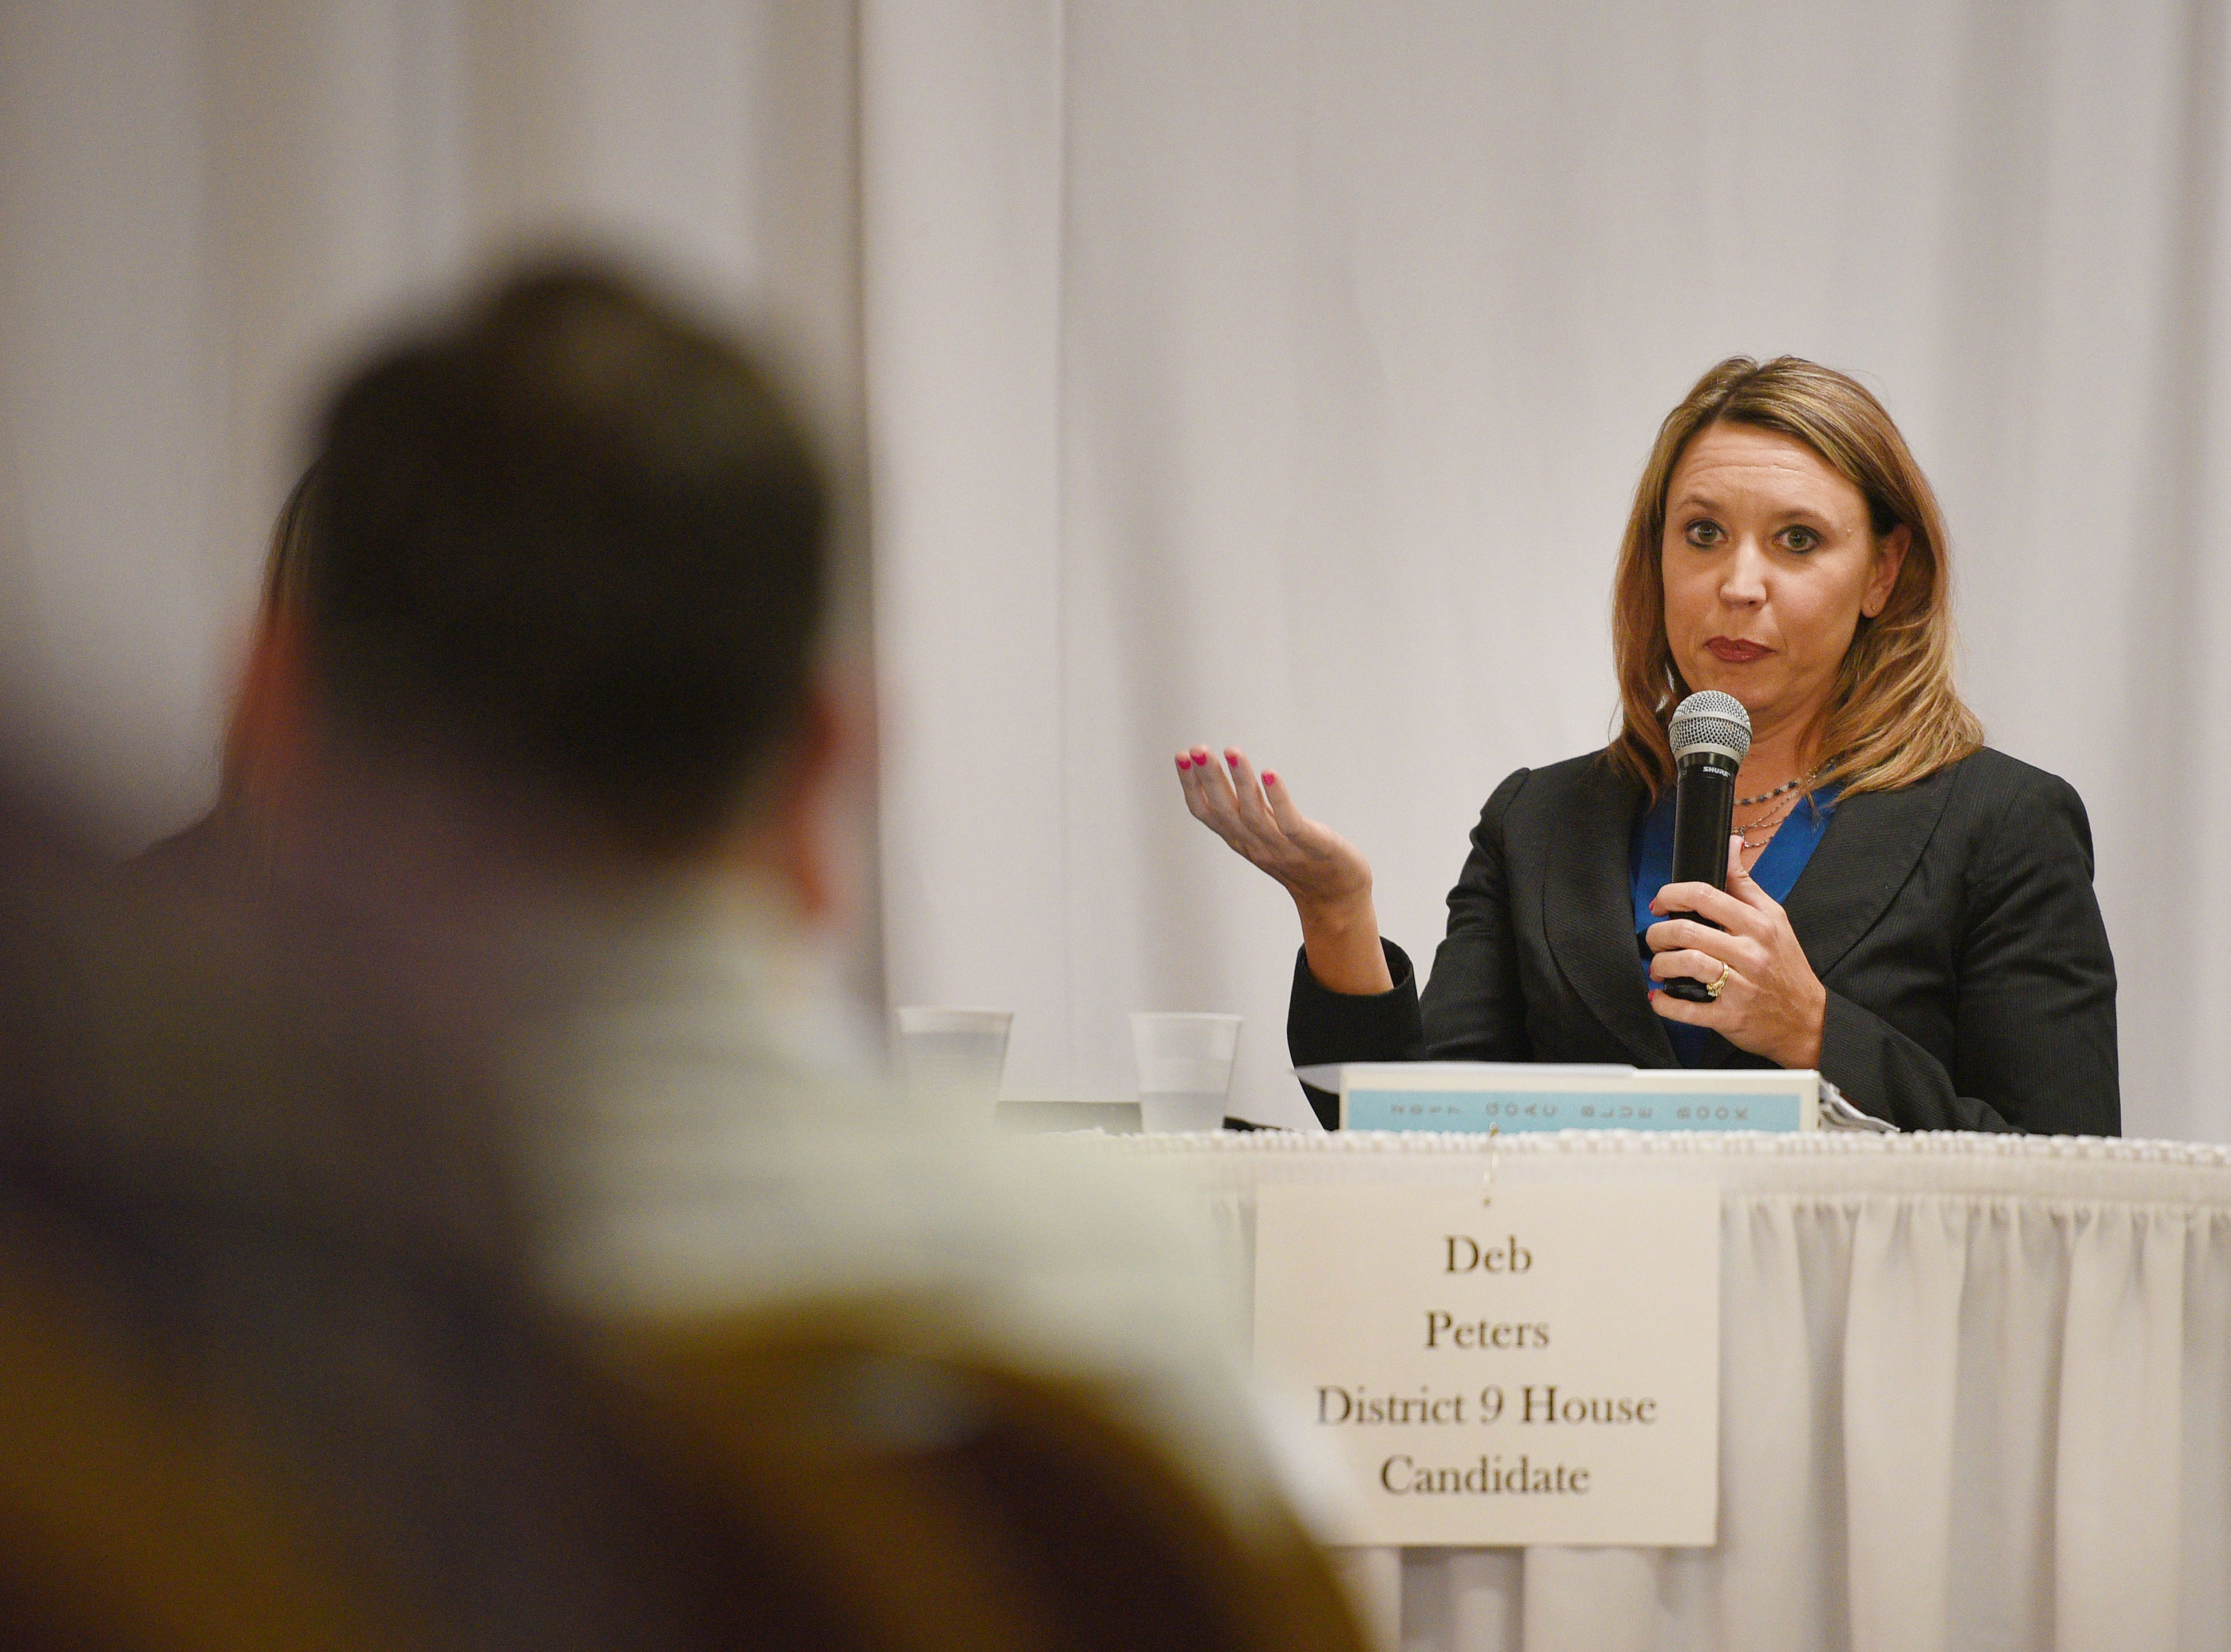 Legislative candidate Deb Peters (R) answers questions from constituents Thursday, Sept. 27, at Dakota Plains Event Center in Hartford. Candidates discussed Initiated Measure 22, health care and spending priorities.